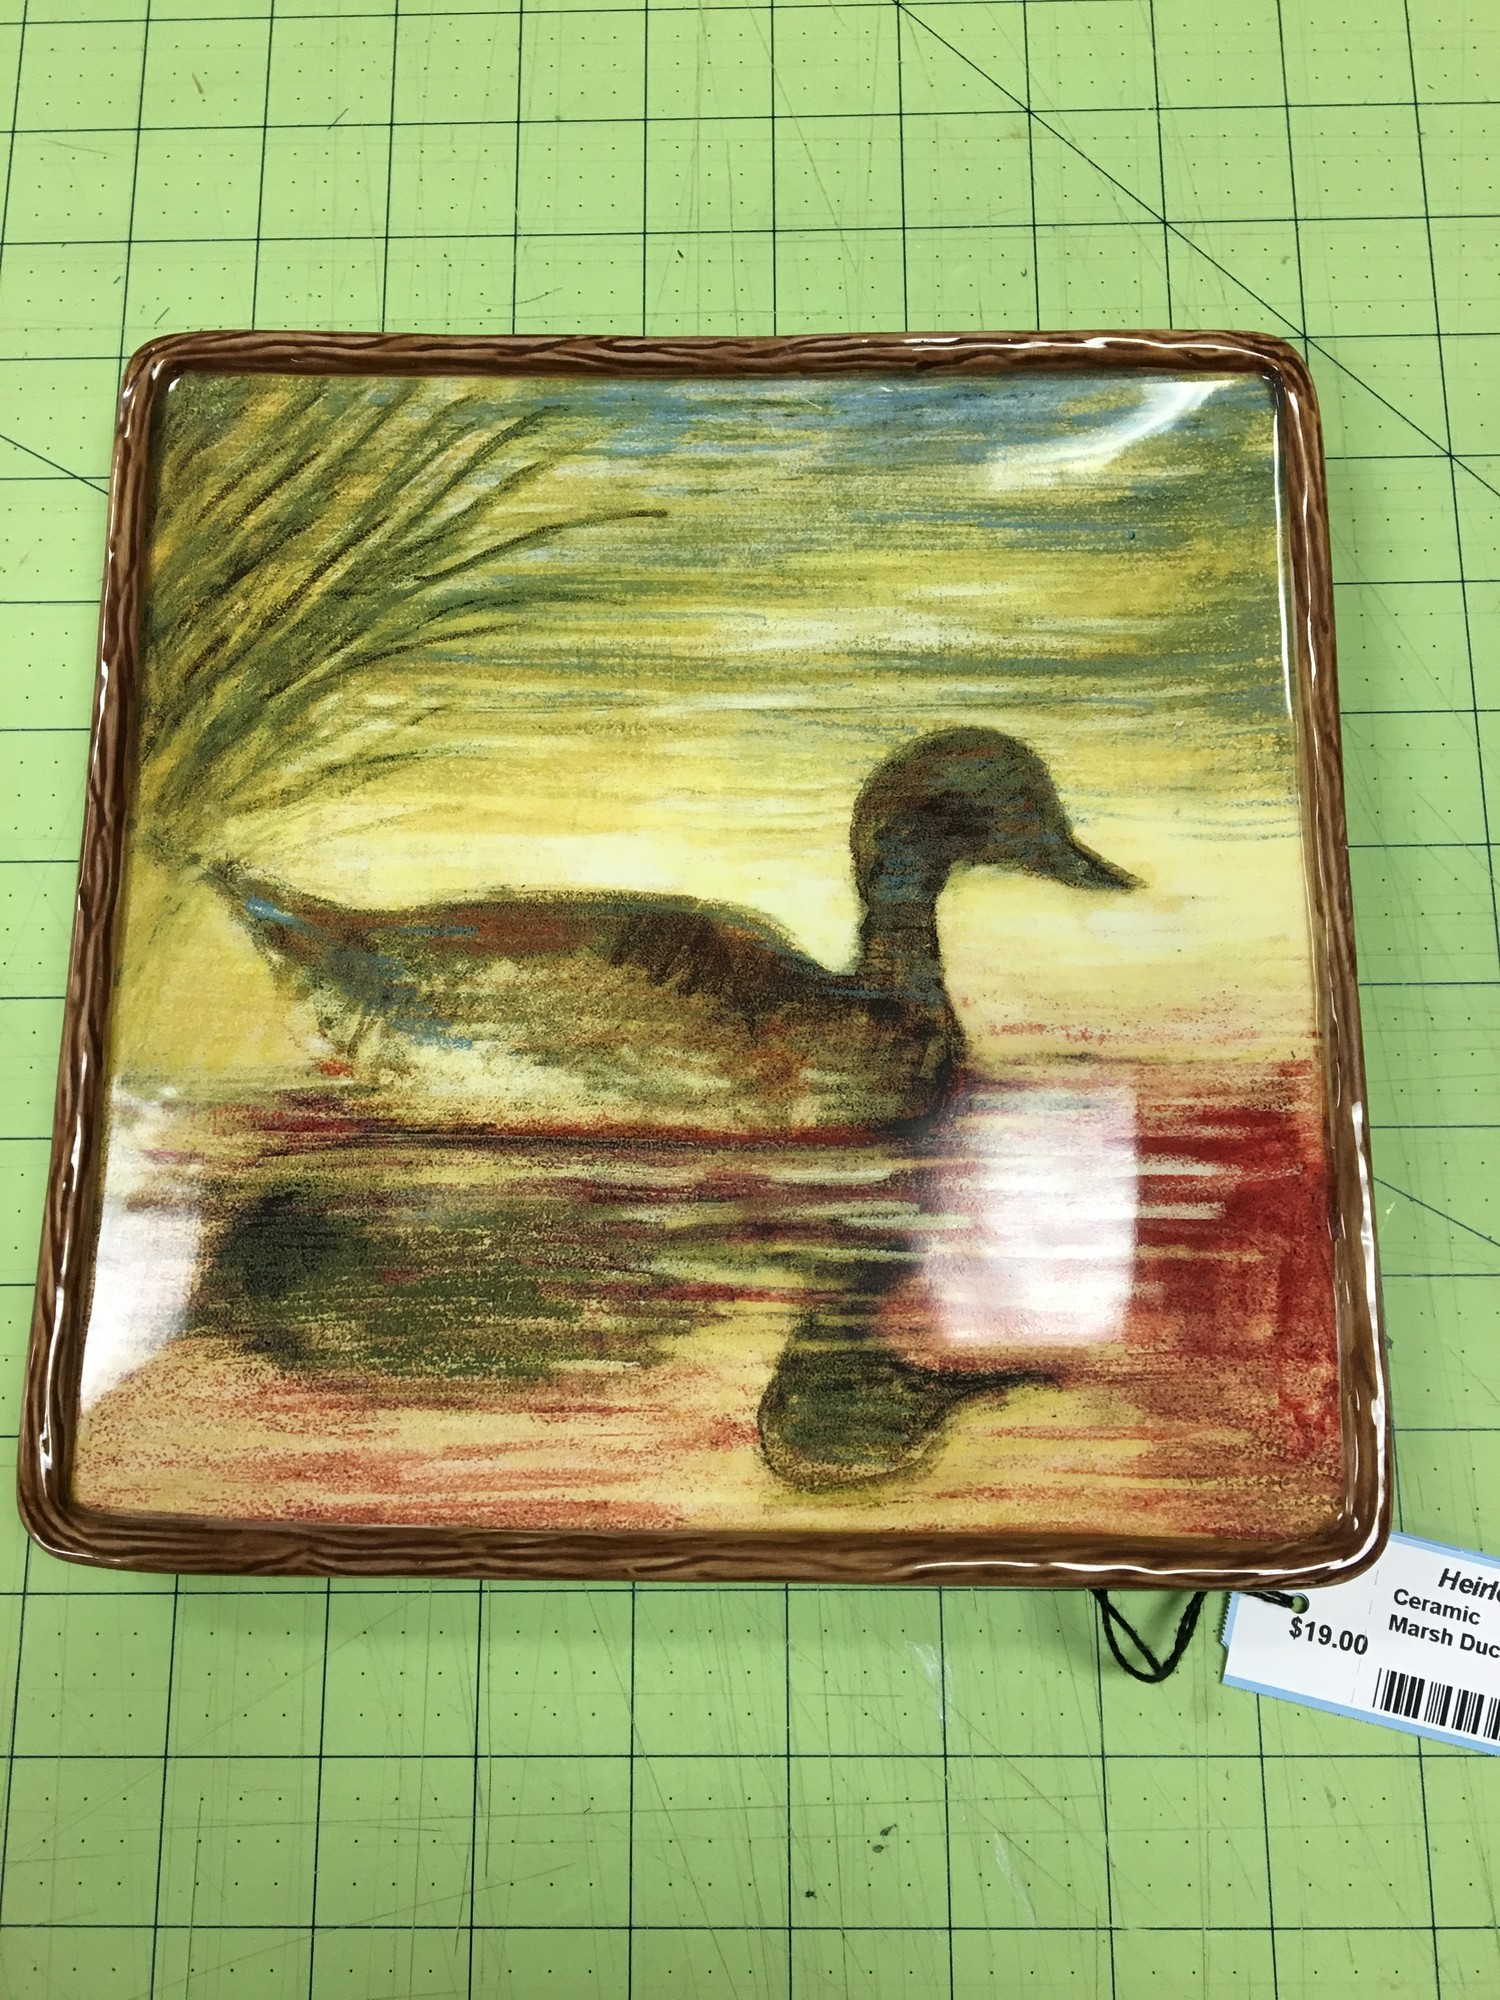 Marsh Duck On Plate, Autumn, Size: 8x8